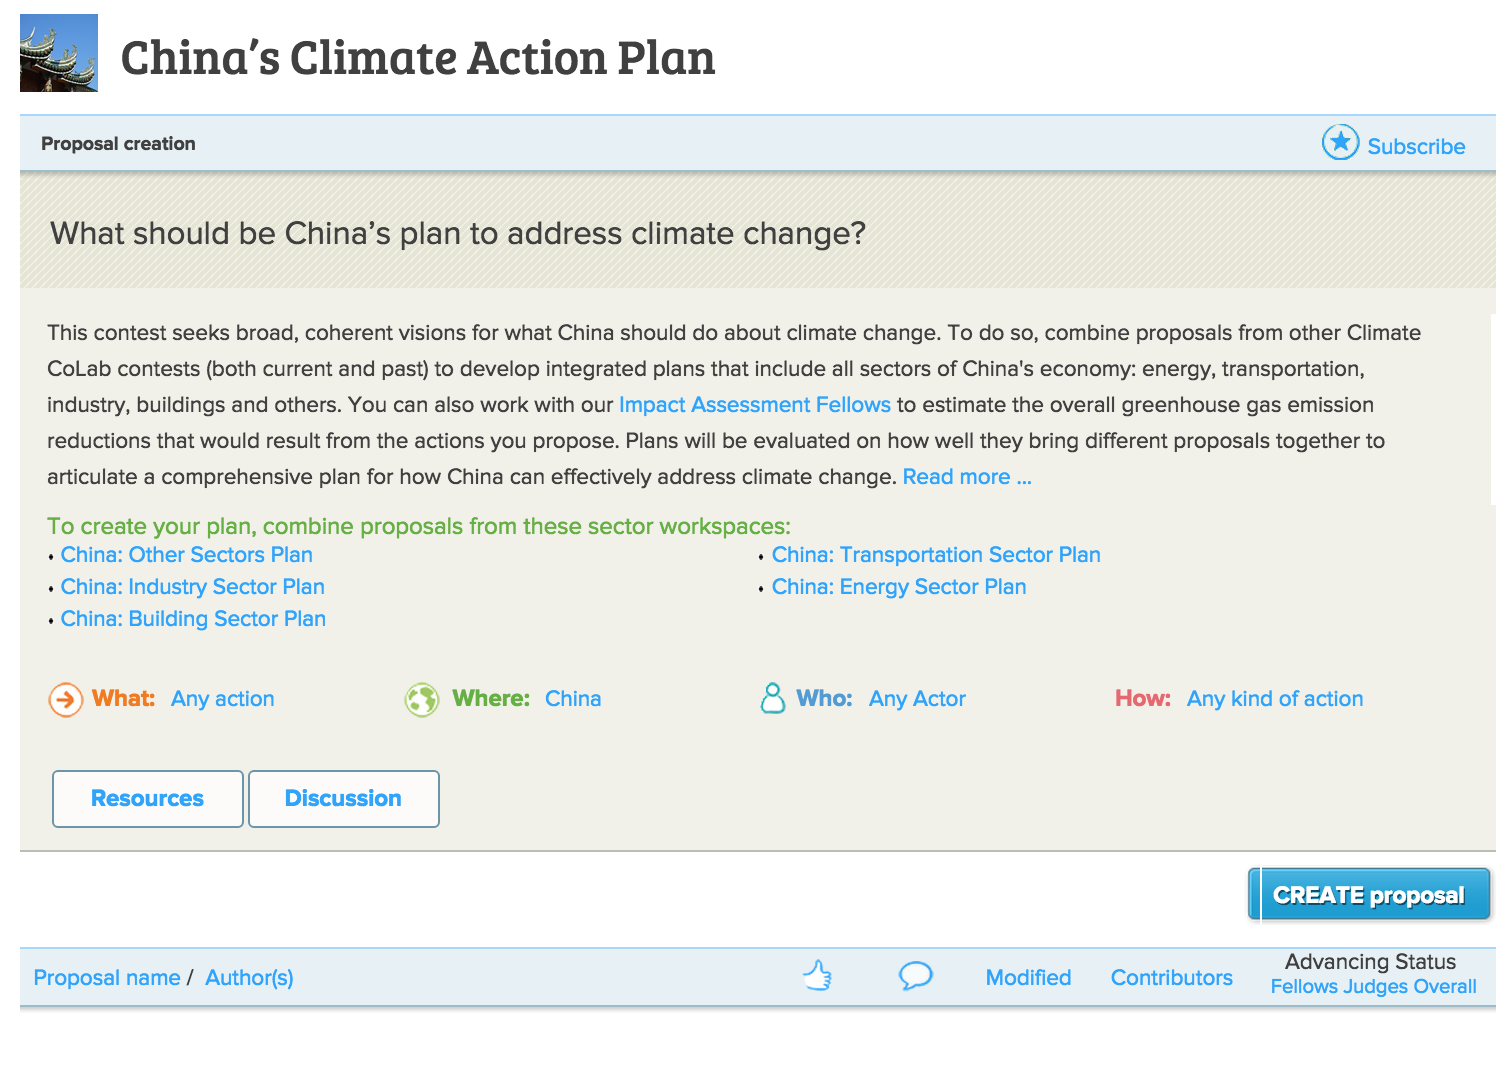 Press Release: Crowdsourcing climate strategy - Community - Climate CoLab